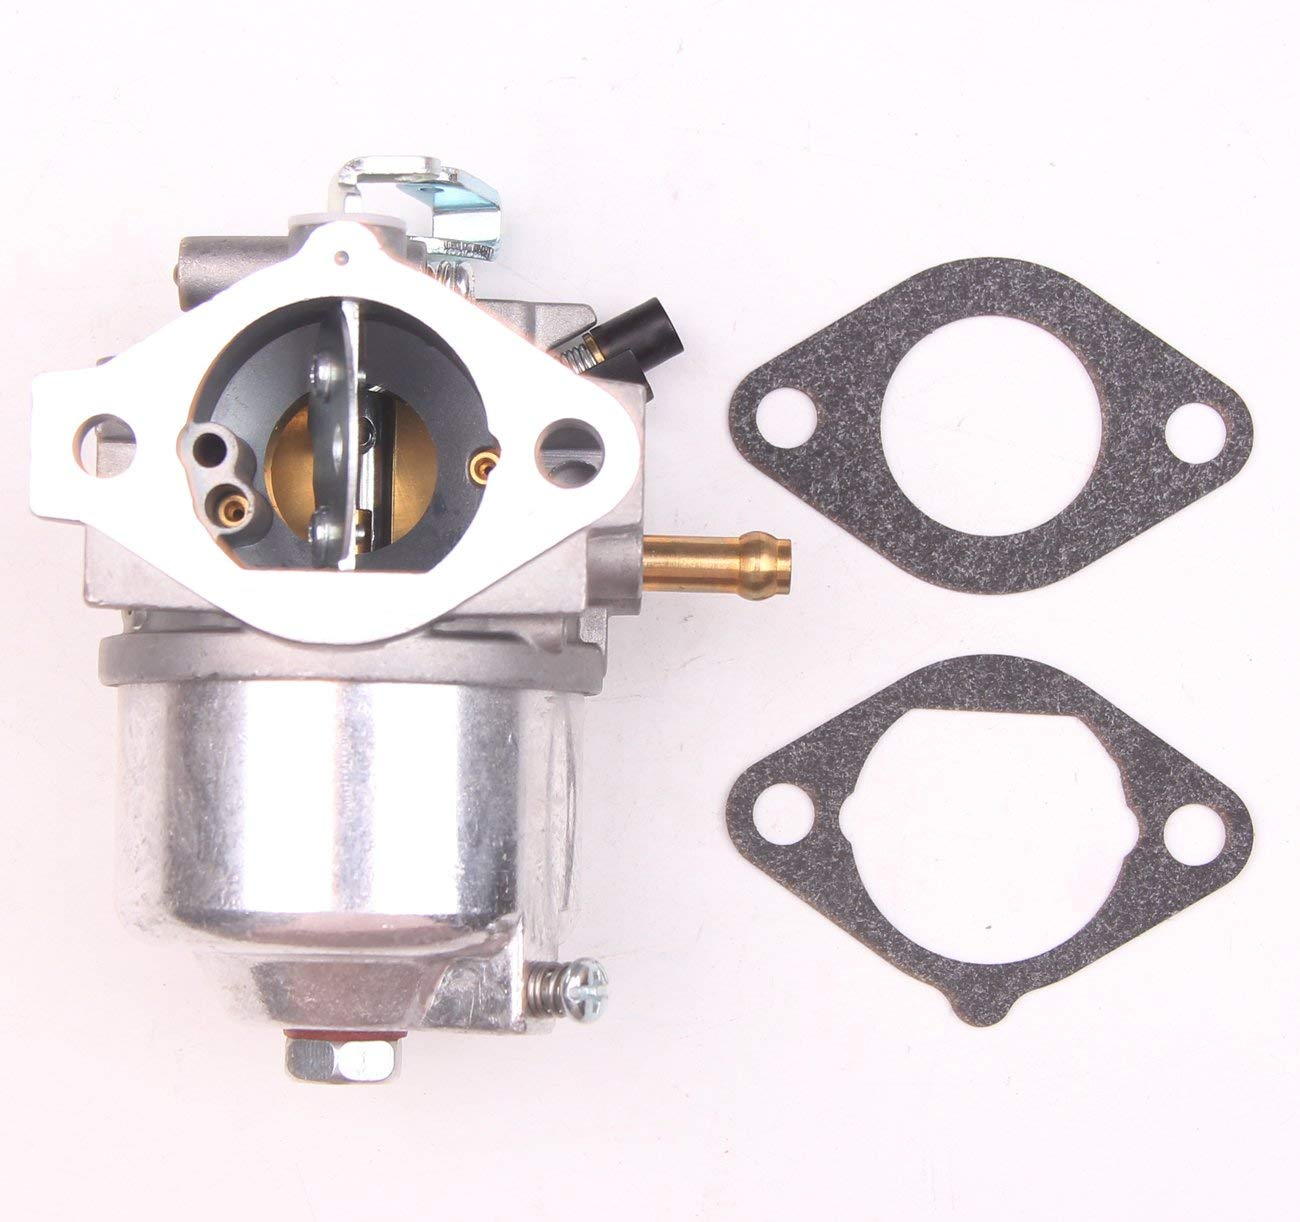 Cheap Kawasaki Fb460v Carburetor  Find Kawasaki Fb460v